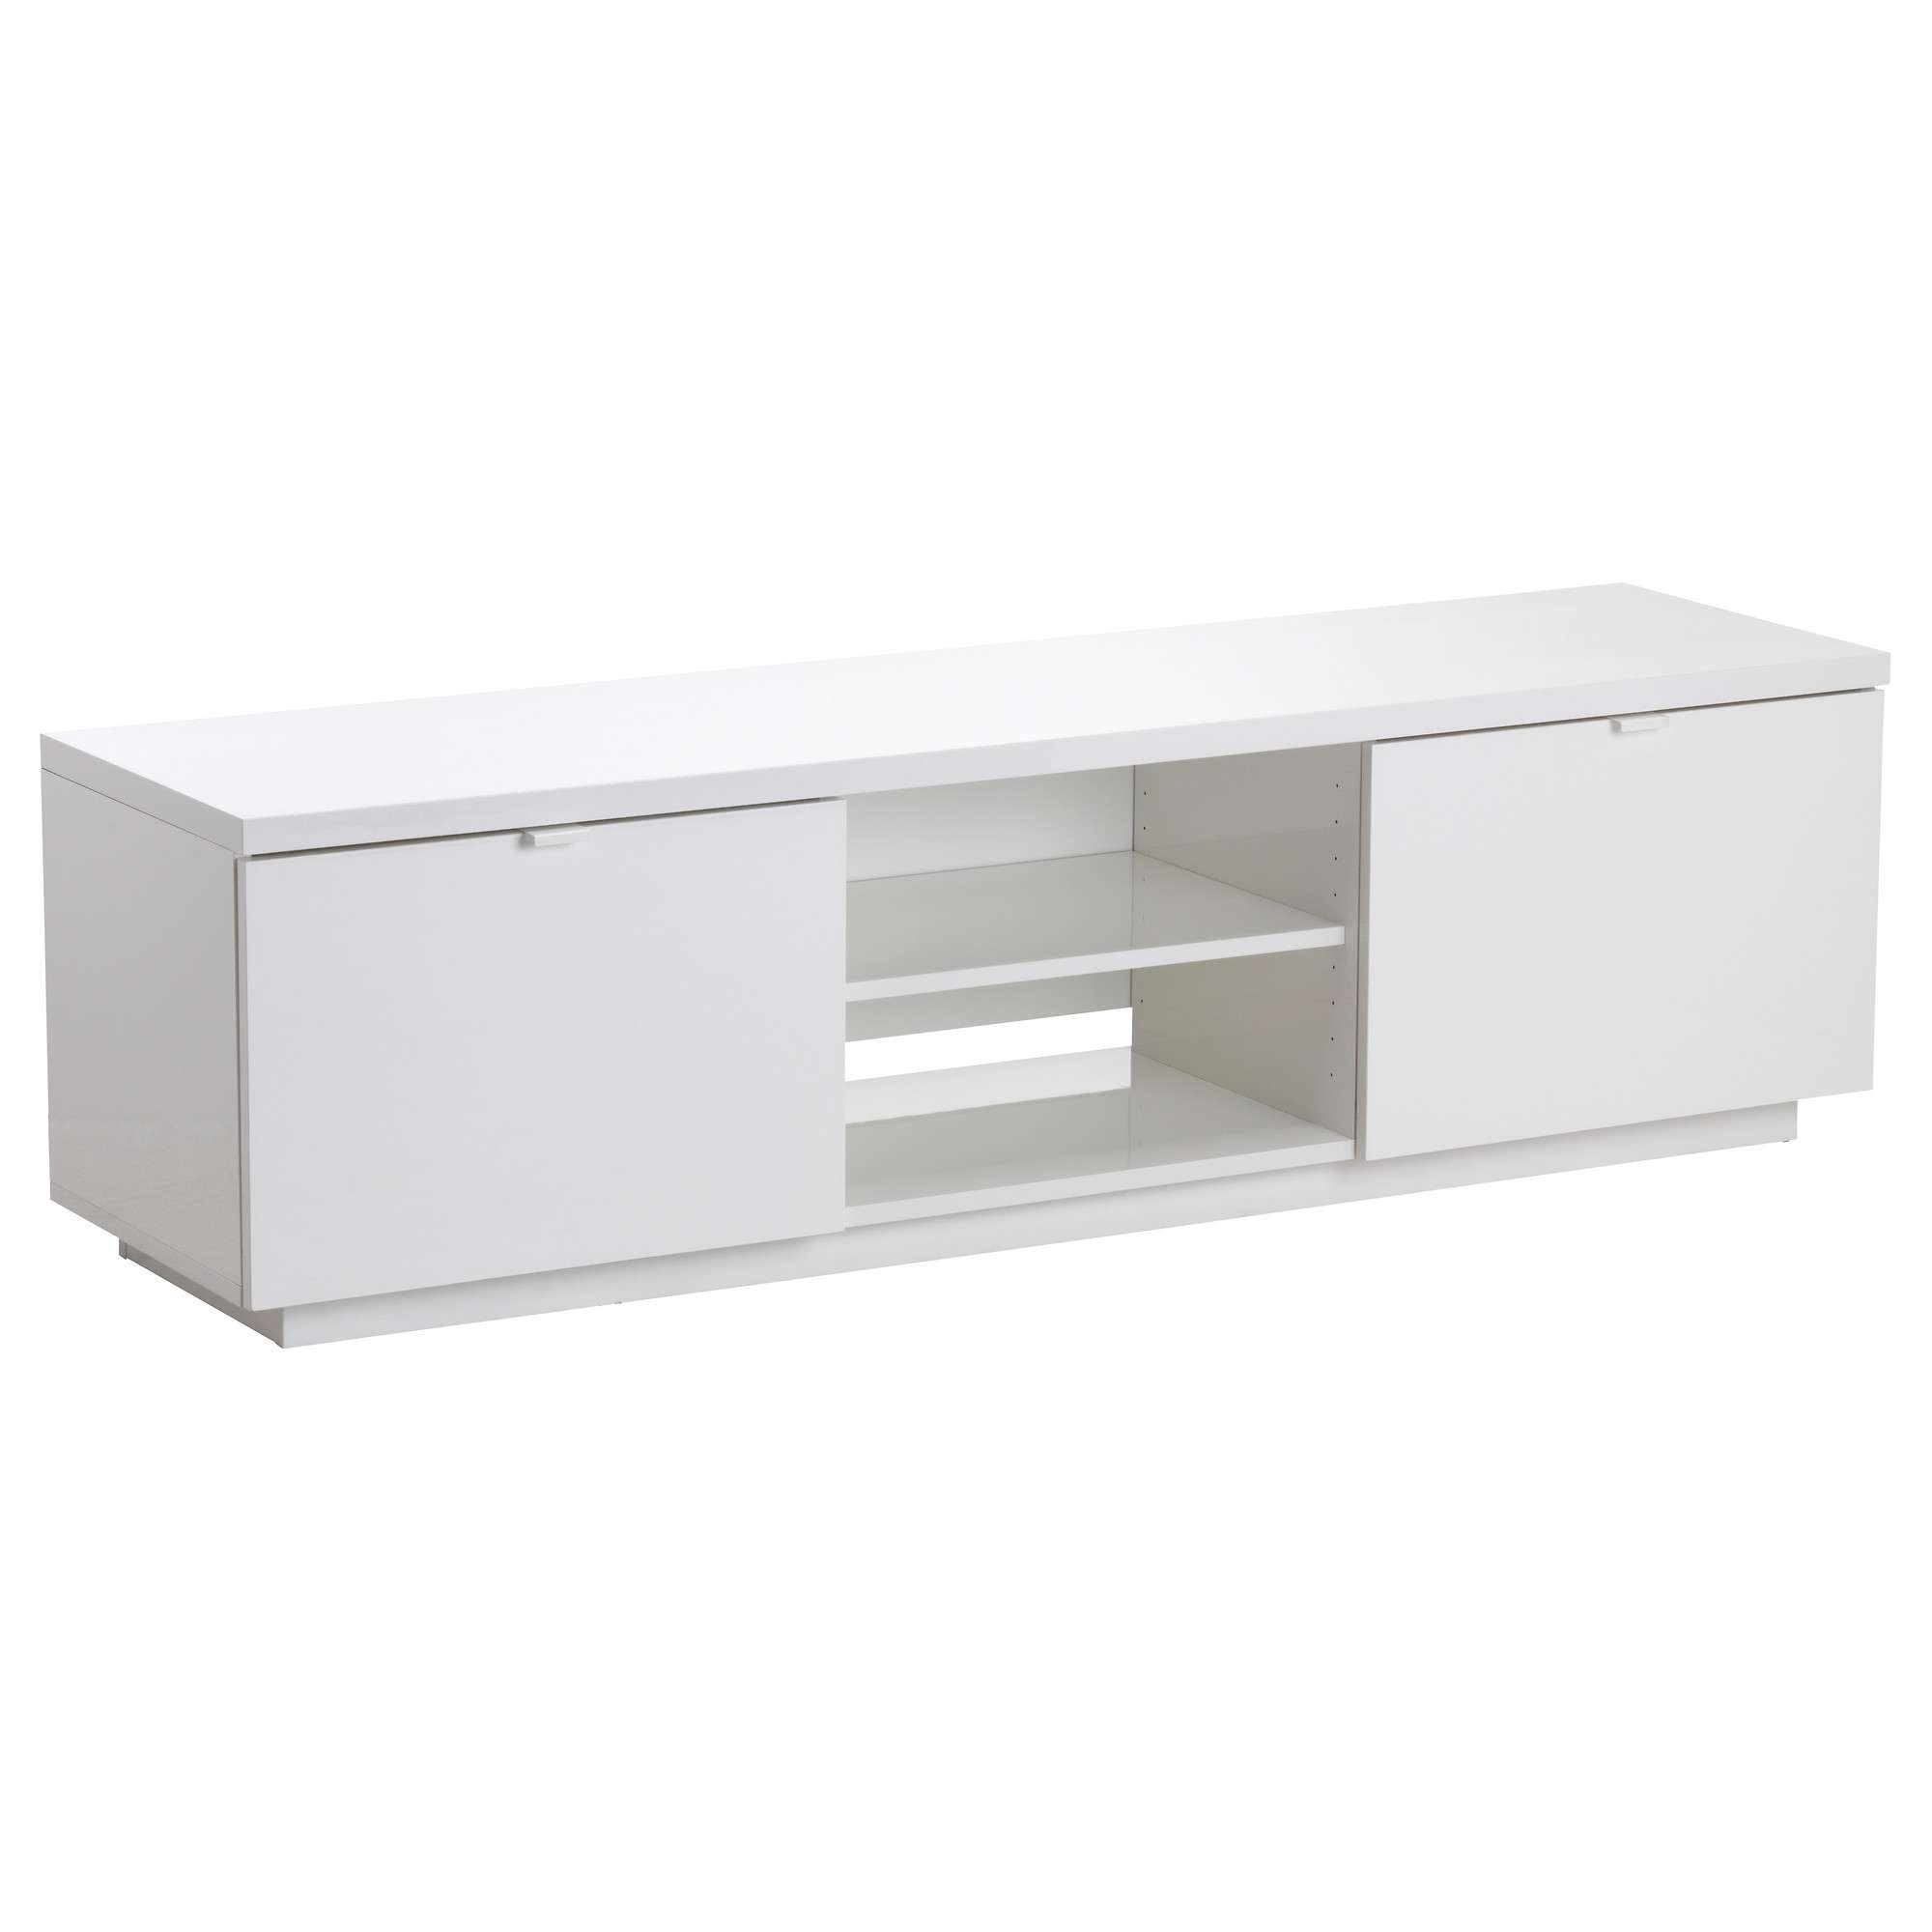 Byås Tv Bench High Gloss White 160X42X45 Cm – Ikea Regarding Long White Tv Cabinets (View 4 of 20)